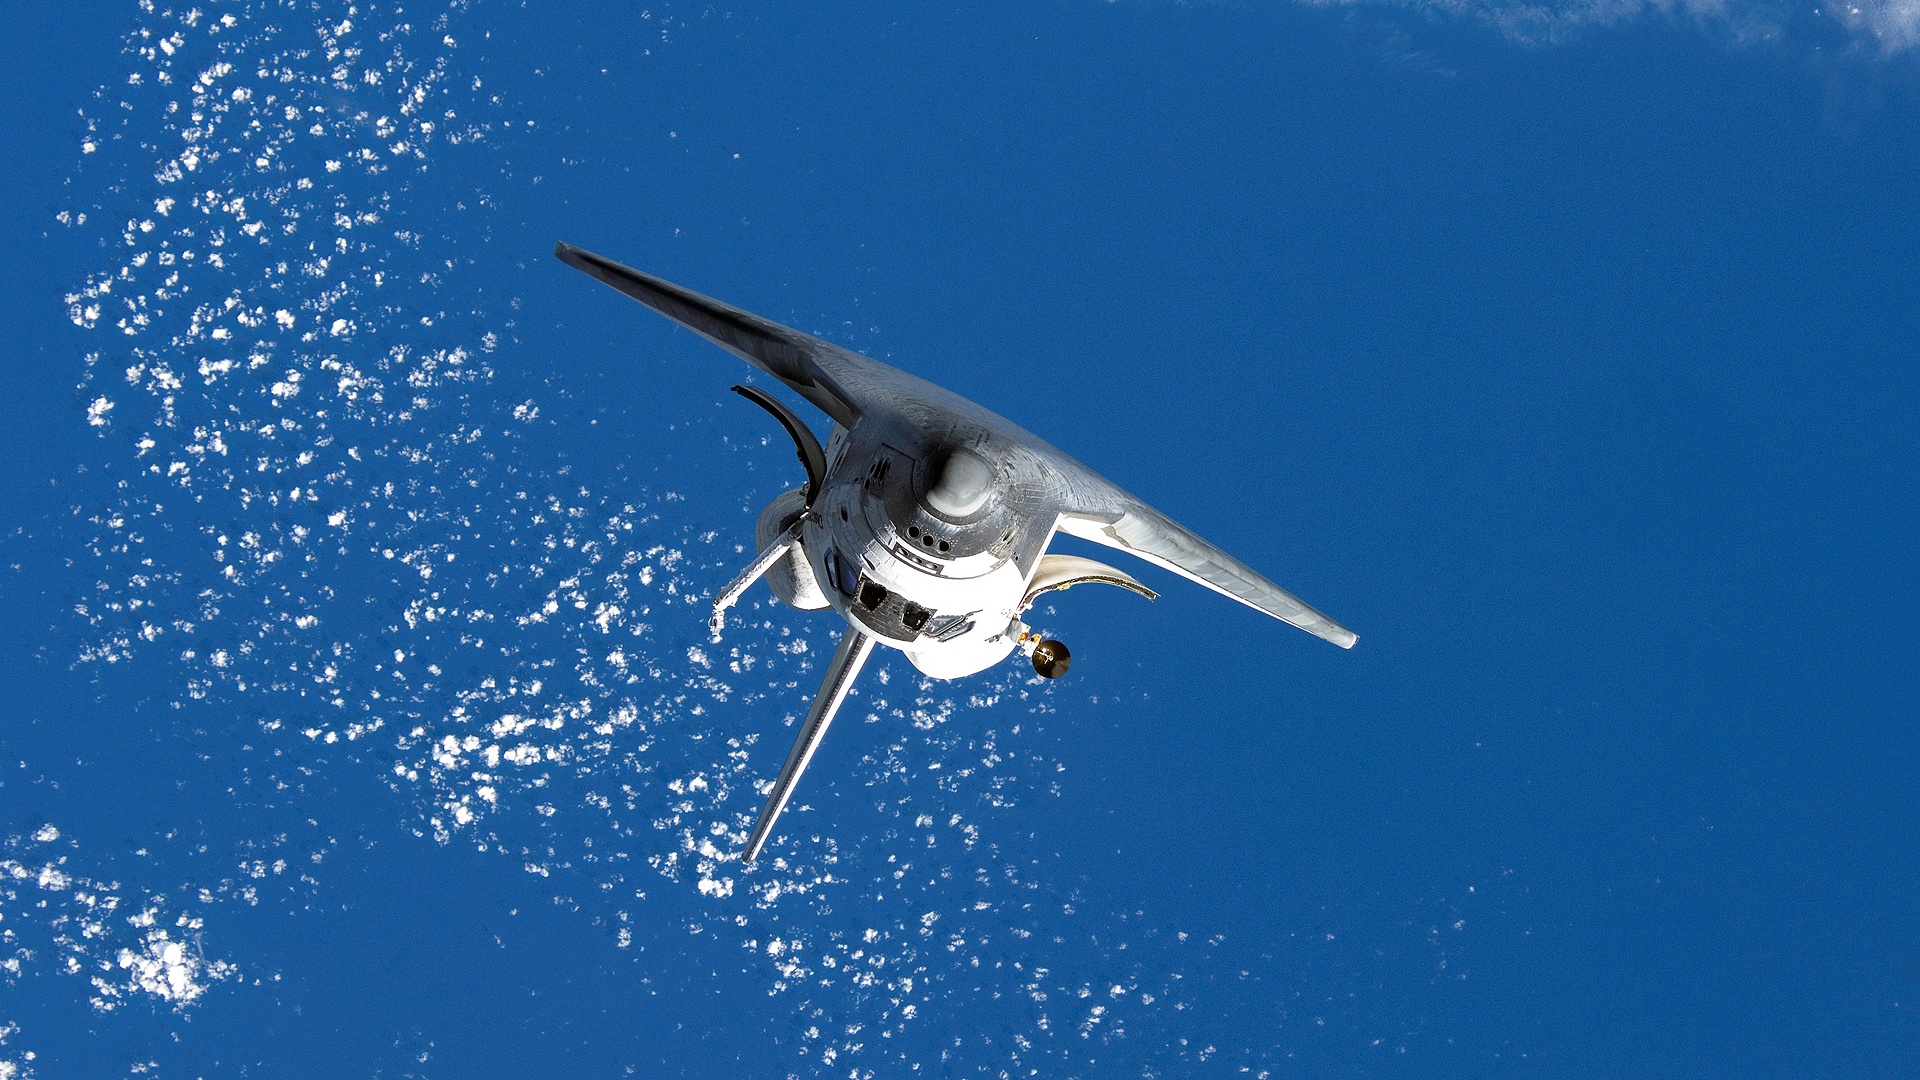 1920x1080 - Space Shuttle atlantis Wallpapers 30